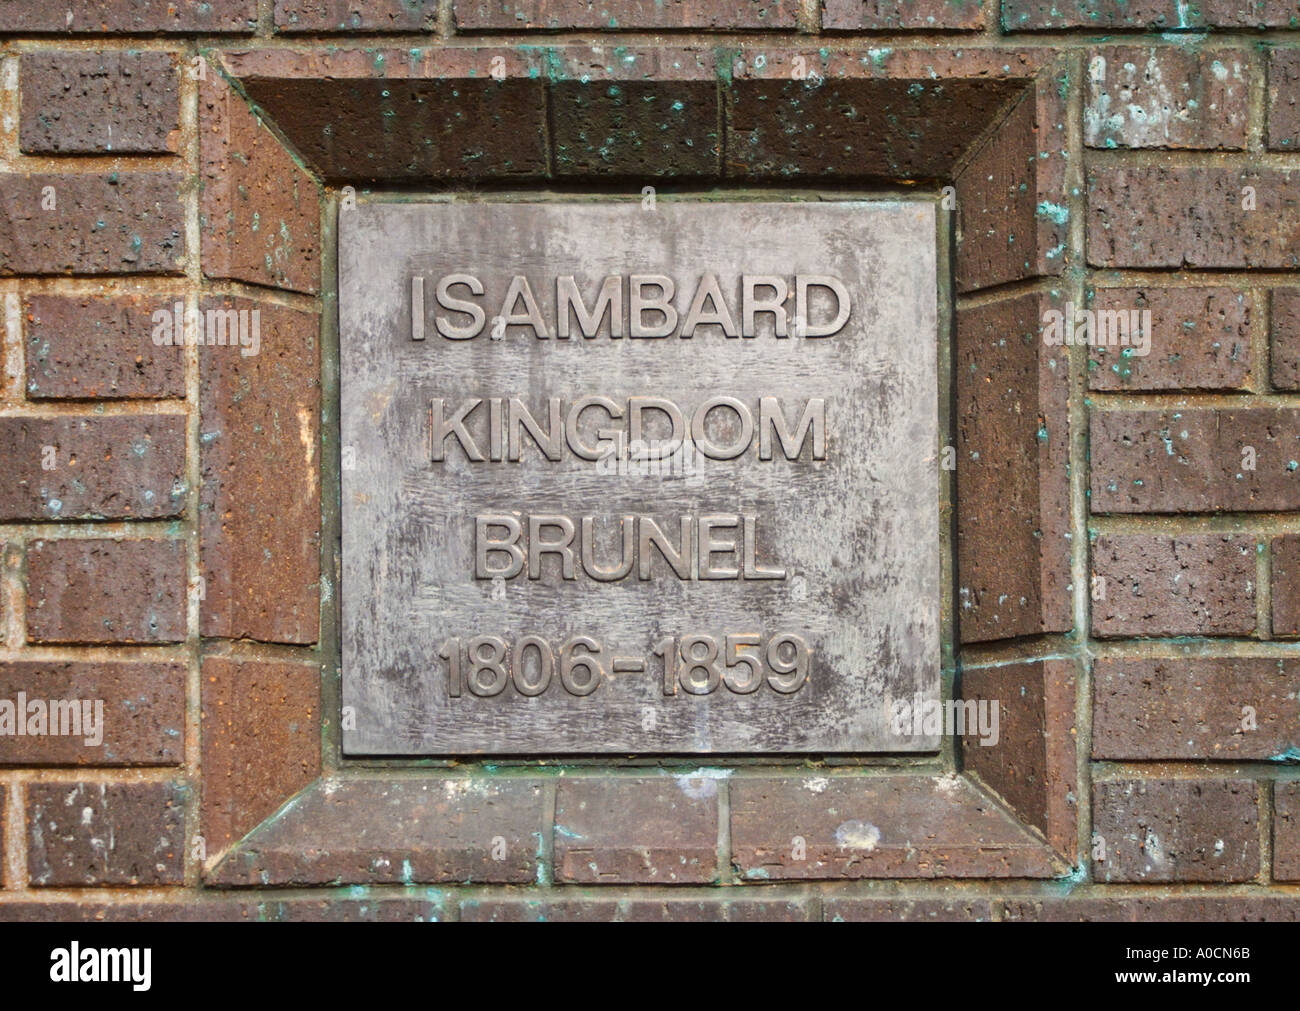 Name plaque on the statue of Isambard Kingdom Brunel 1806 1859 in Bristol - Stock Image